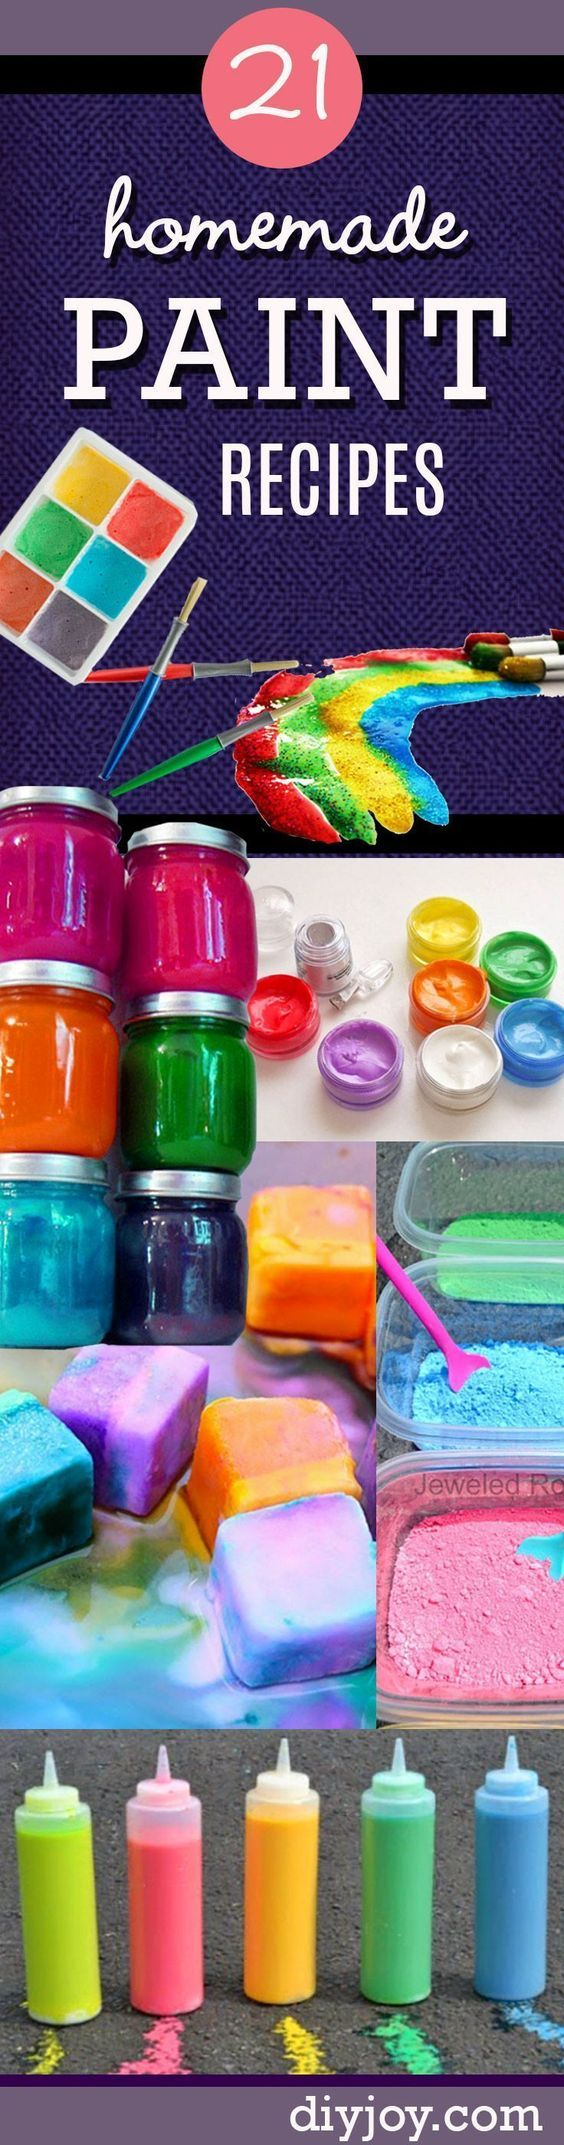 17 Best Ideas About Homemade Crafts On Pinterest Crafts Diy Stuff And Hom